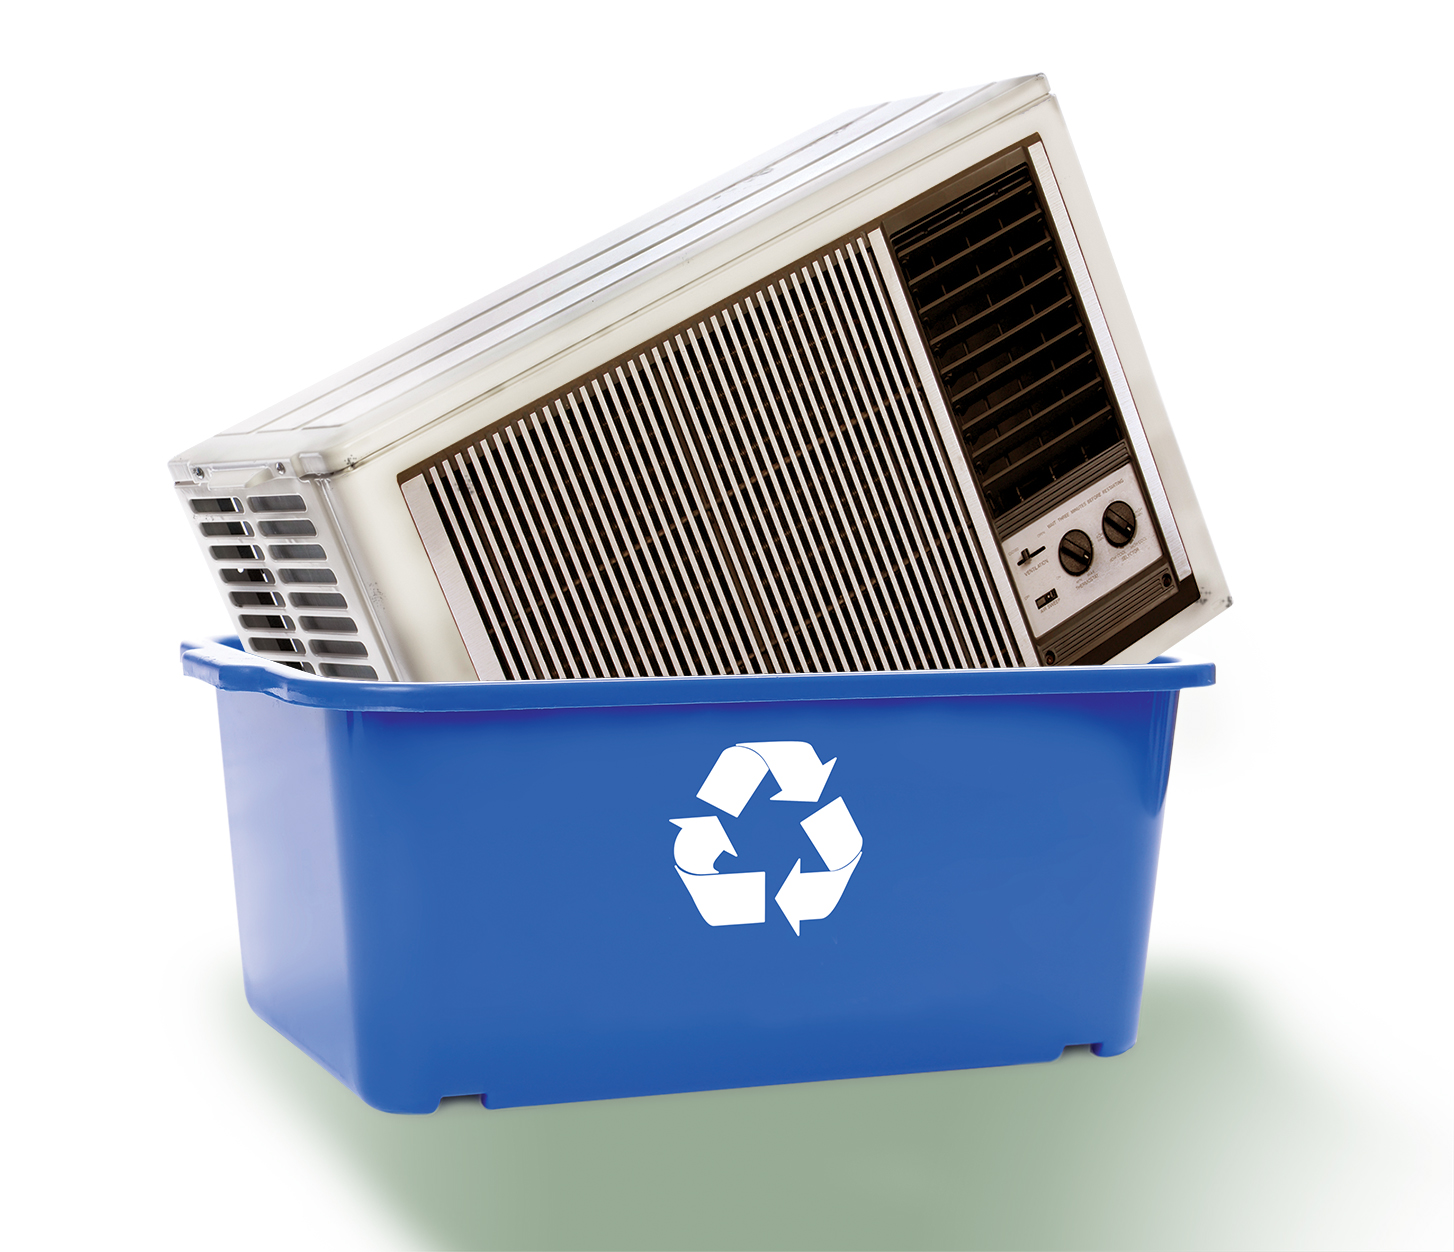 Appliance Recycling | BGE Smart Energy Savers Program